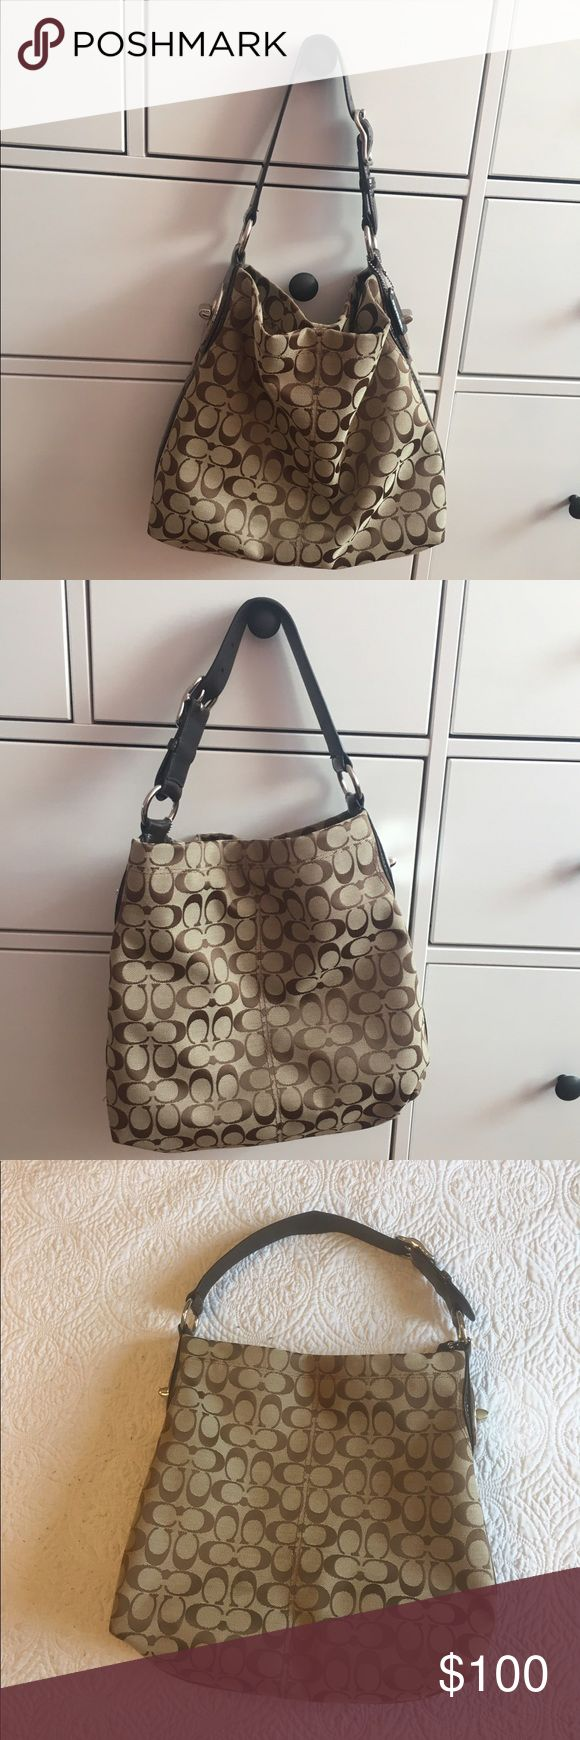 ⭐️ COACH ⭐️ Tan/Brown Signature Shoulder Bag ⭐️ ⭐️ COACH ⭐️ Tan/Brown Signature Should Bag • good condition • Zip, cell and multifunction pockets • strap shaped from storing on closet hook ‼️open to offers‼️ Coach Bags Shoulder Bags